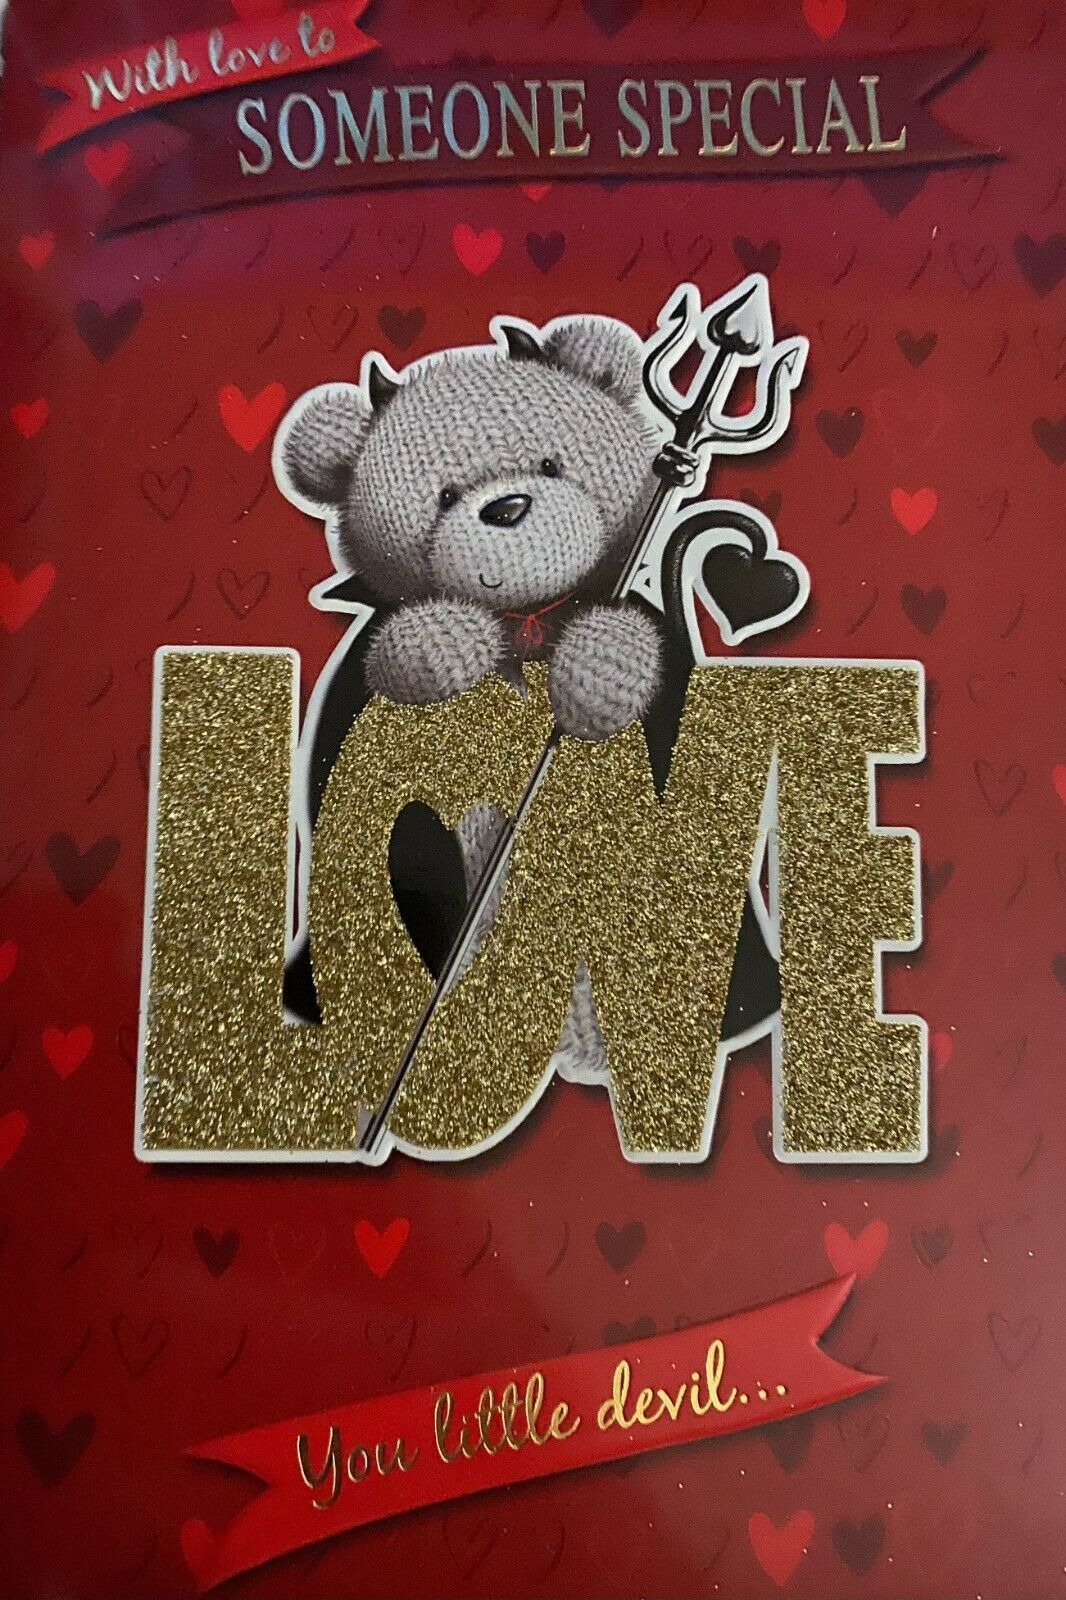 With Love To Someone Special You Little Devil..... Valentine's Day Card